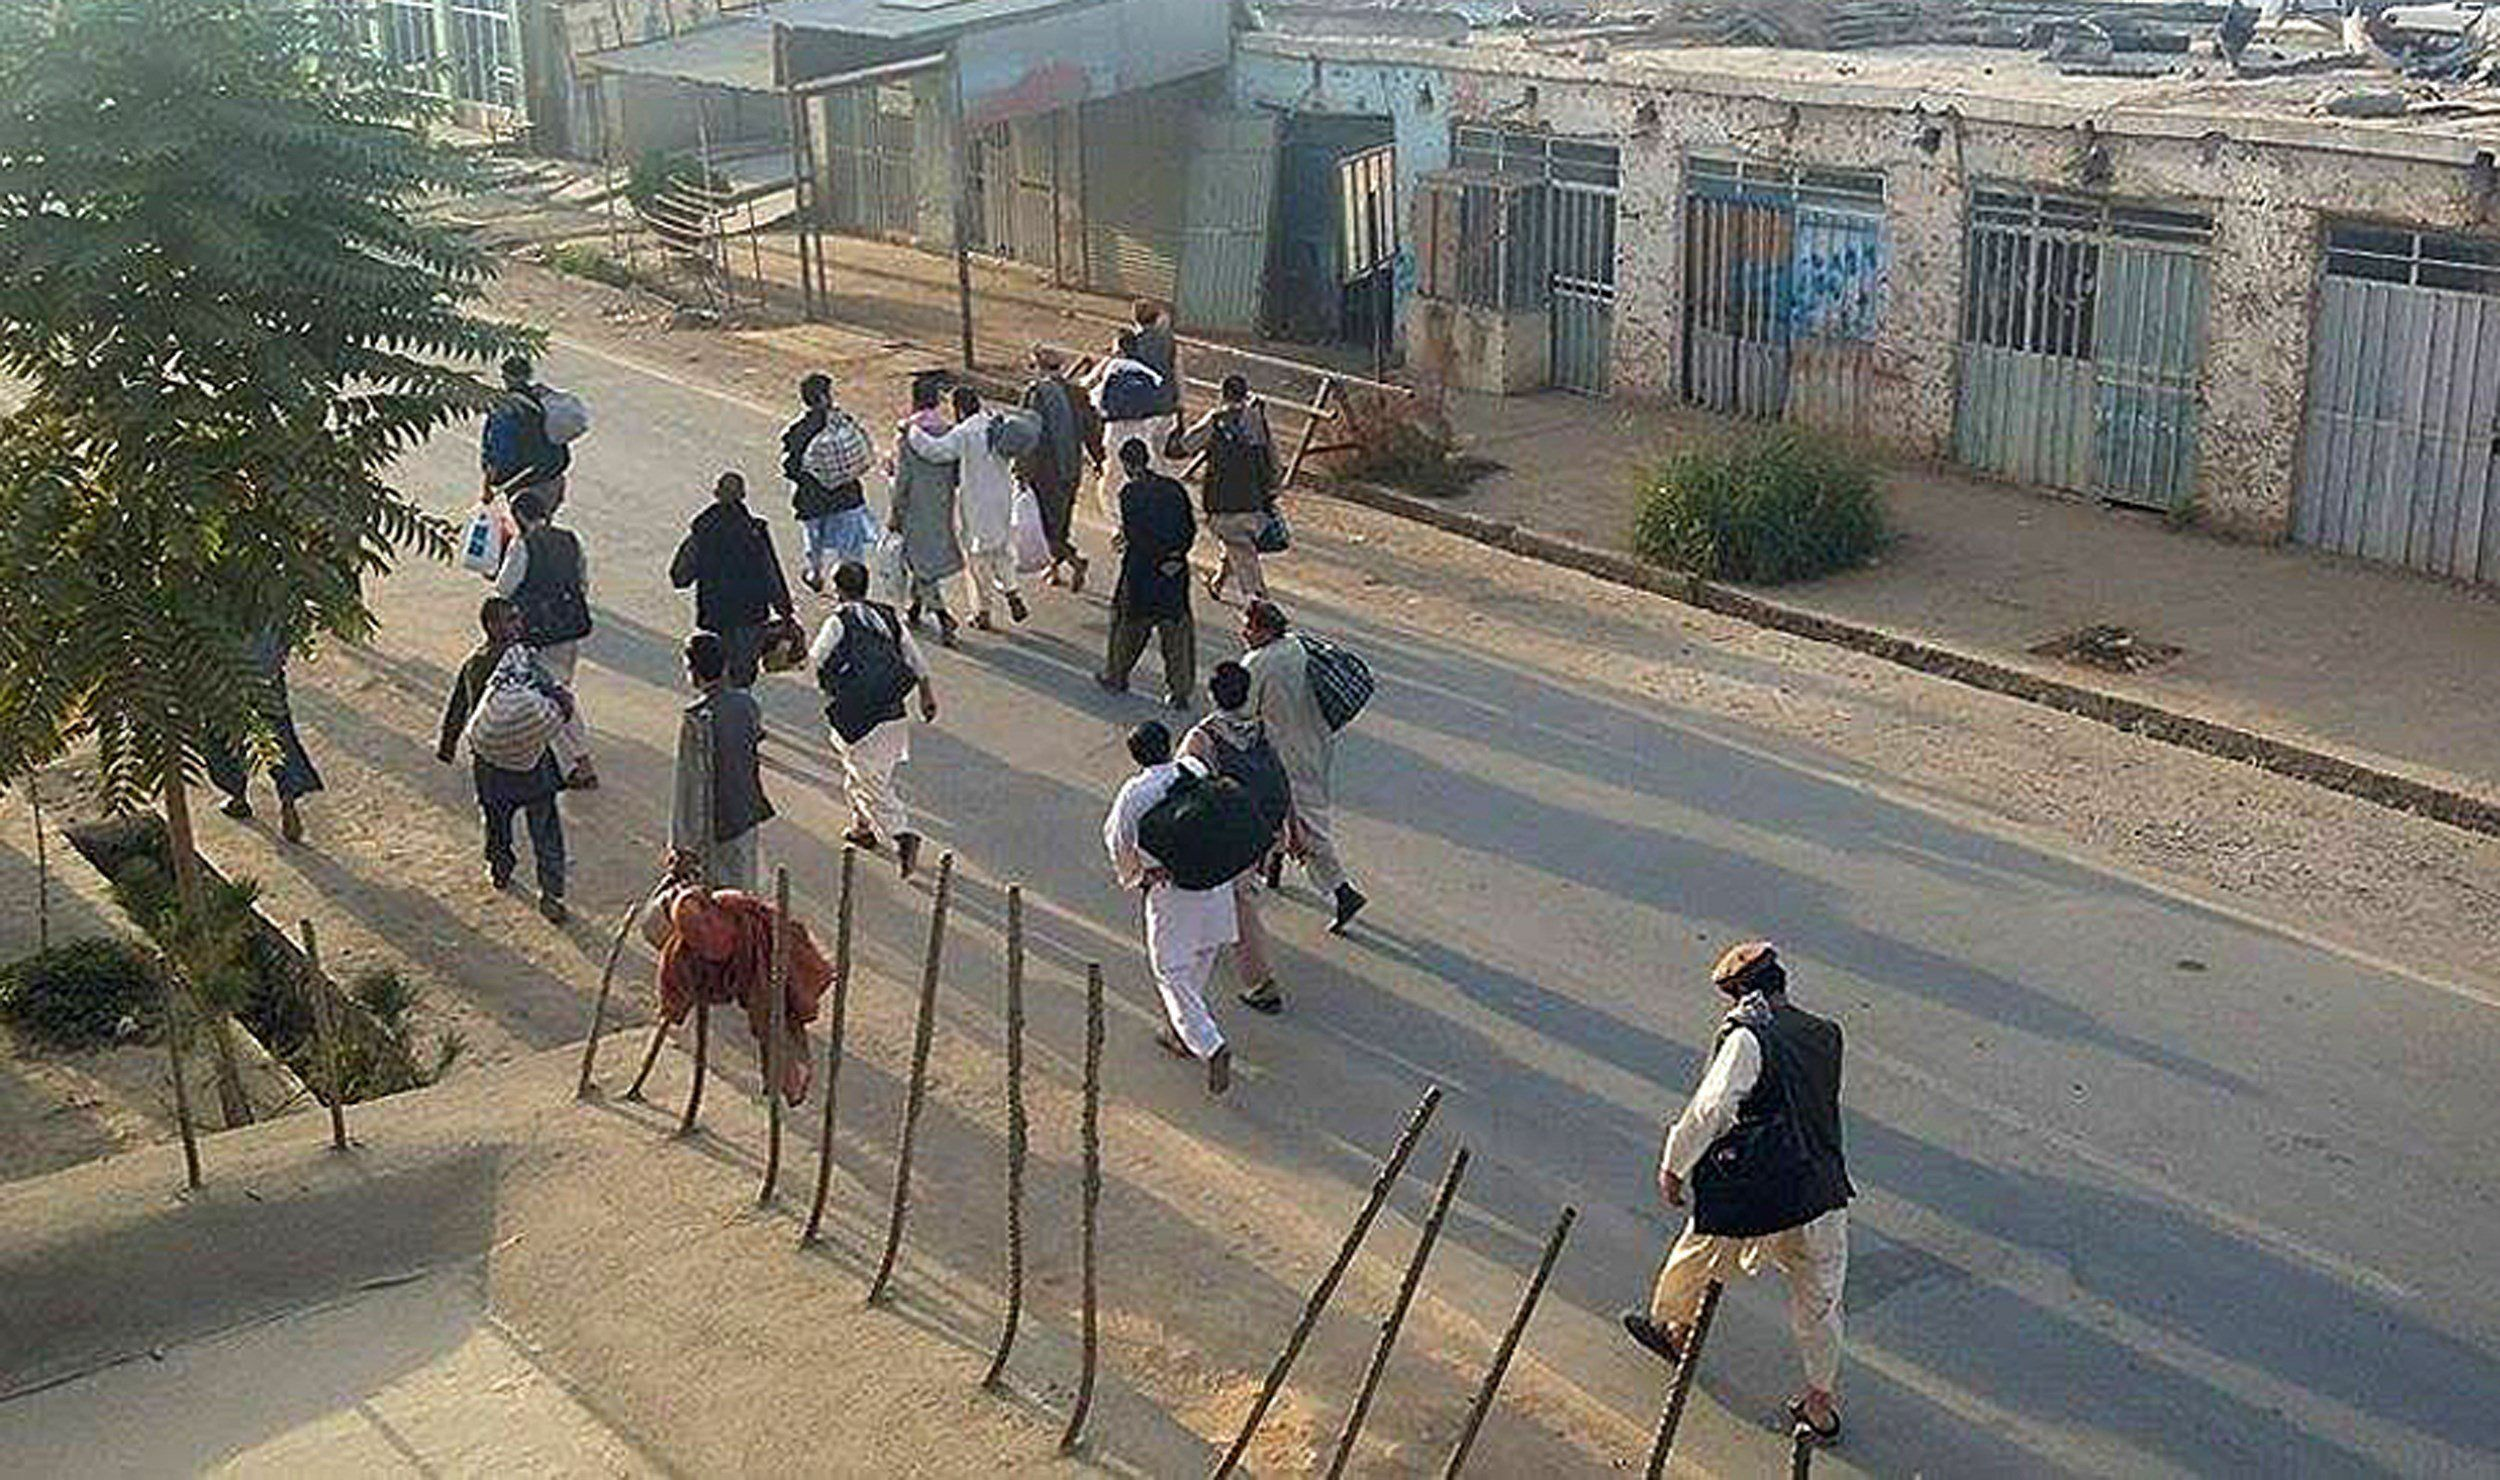 In this photograph taken on September 28, 2015, prisoners walk down a street after Taliban insurgents released them from the main jail in Kunduz. Afghanistan on September 29, 2015, mobilised reinforcements for a counter-offensive to take back Kunduz, a day after Taliban insurgents overran the strategic northern city in their biggest victory since being ousted from power in 2001.   AFP PHOTO        (Photo credit should read STR/AFP/Getty Images)